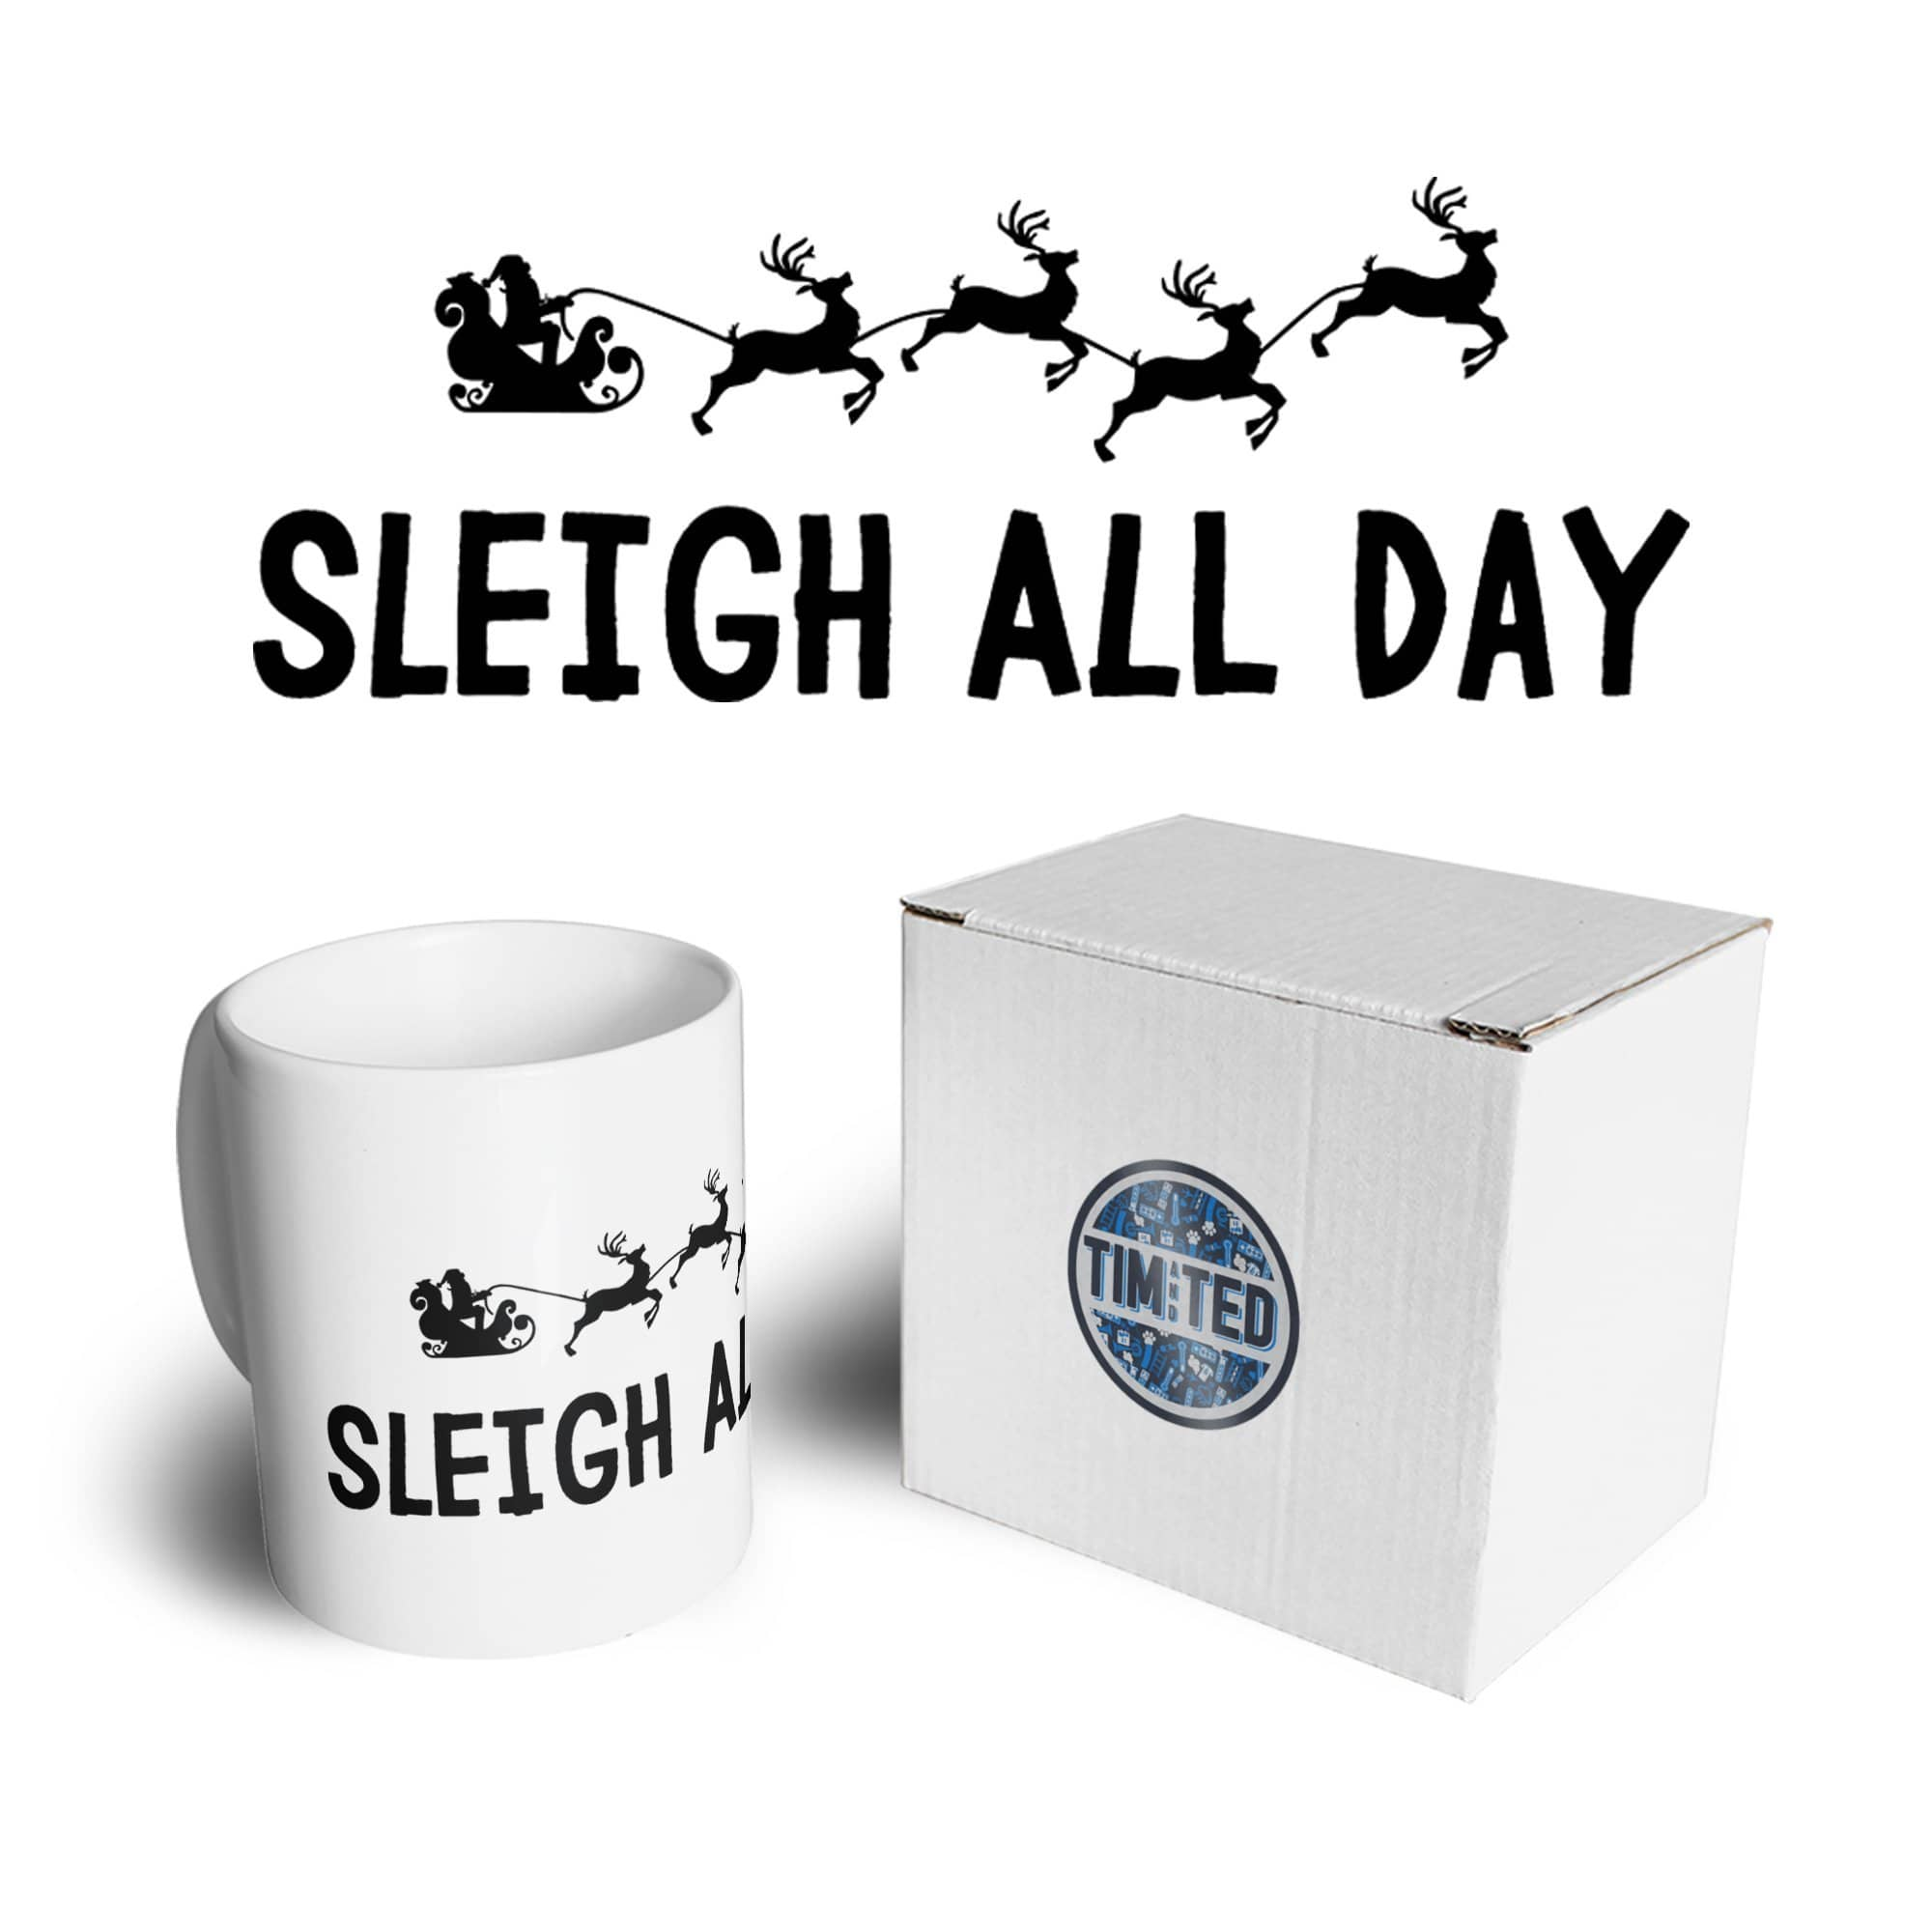 Joke Christmas Mug Sleigh Slay All Day Pun Novelty Coffee Tea Cup